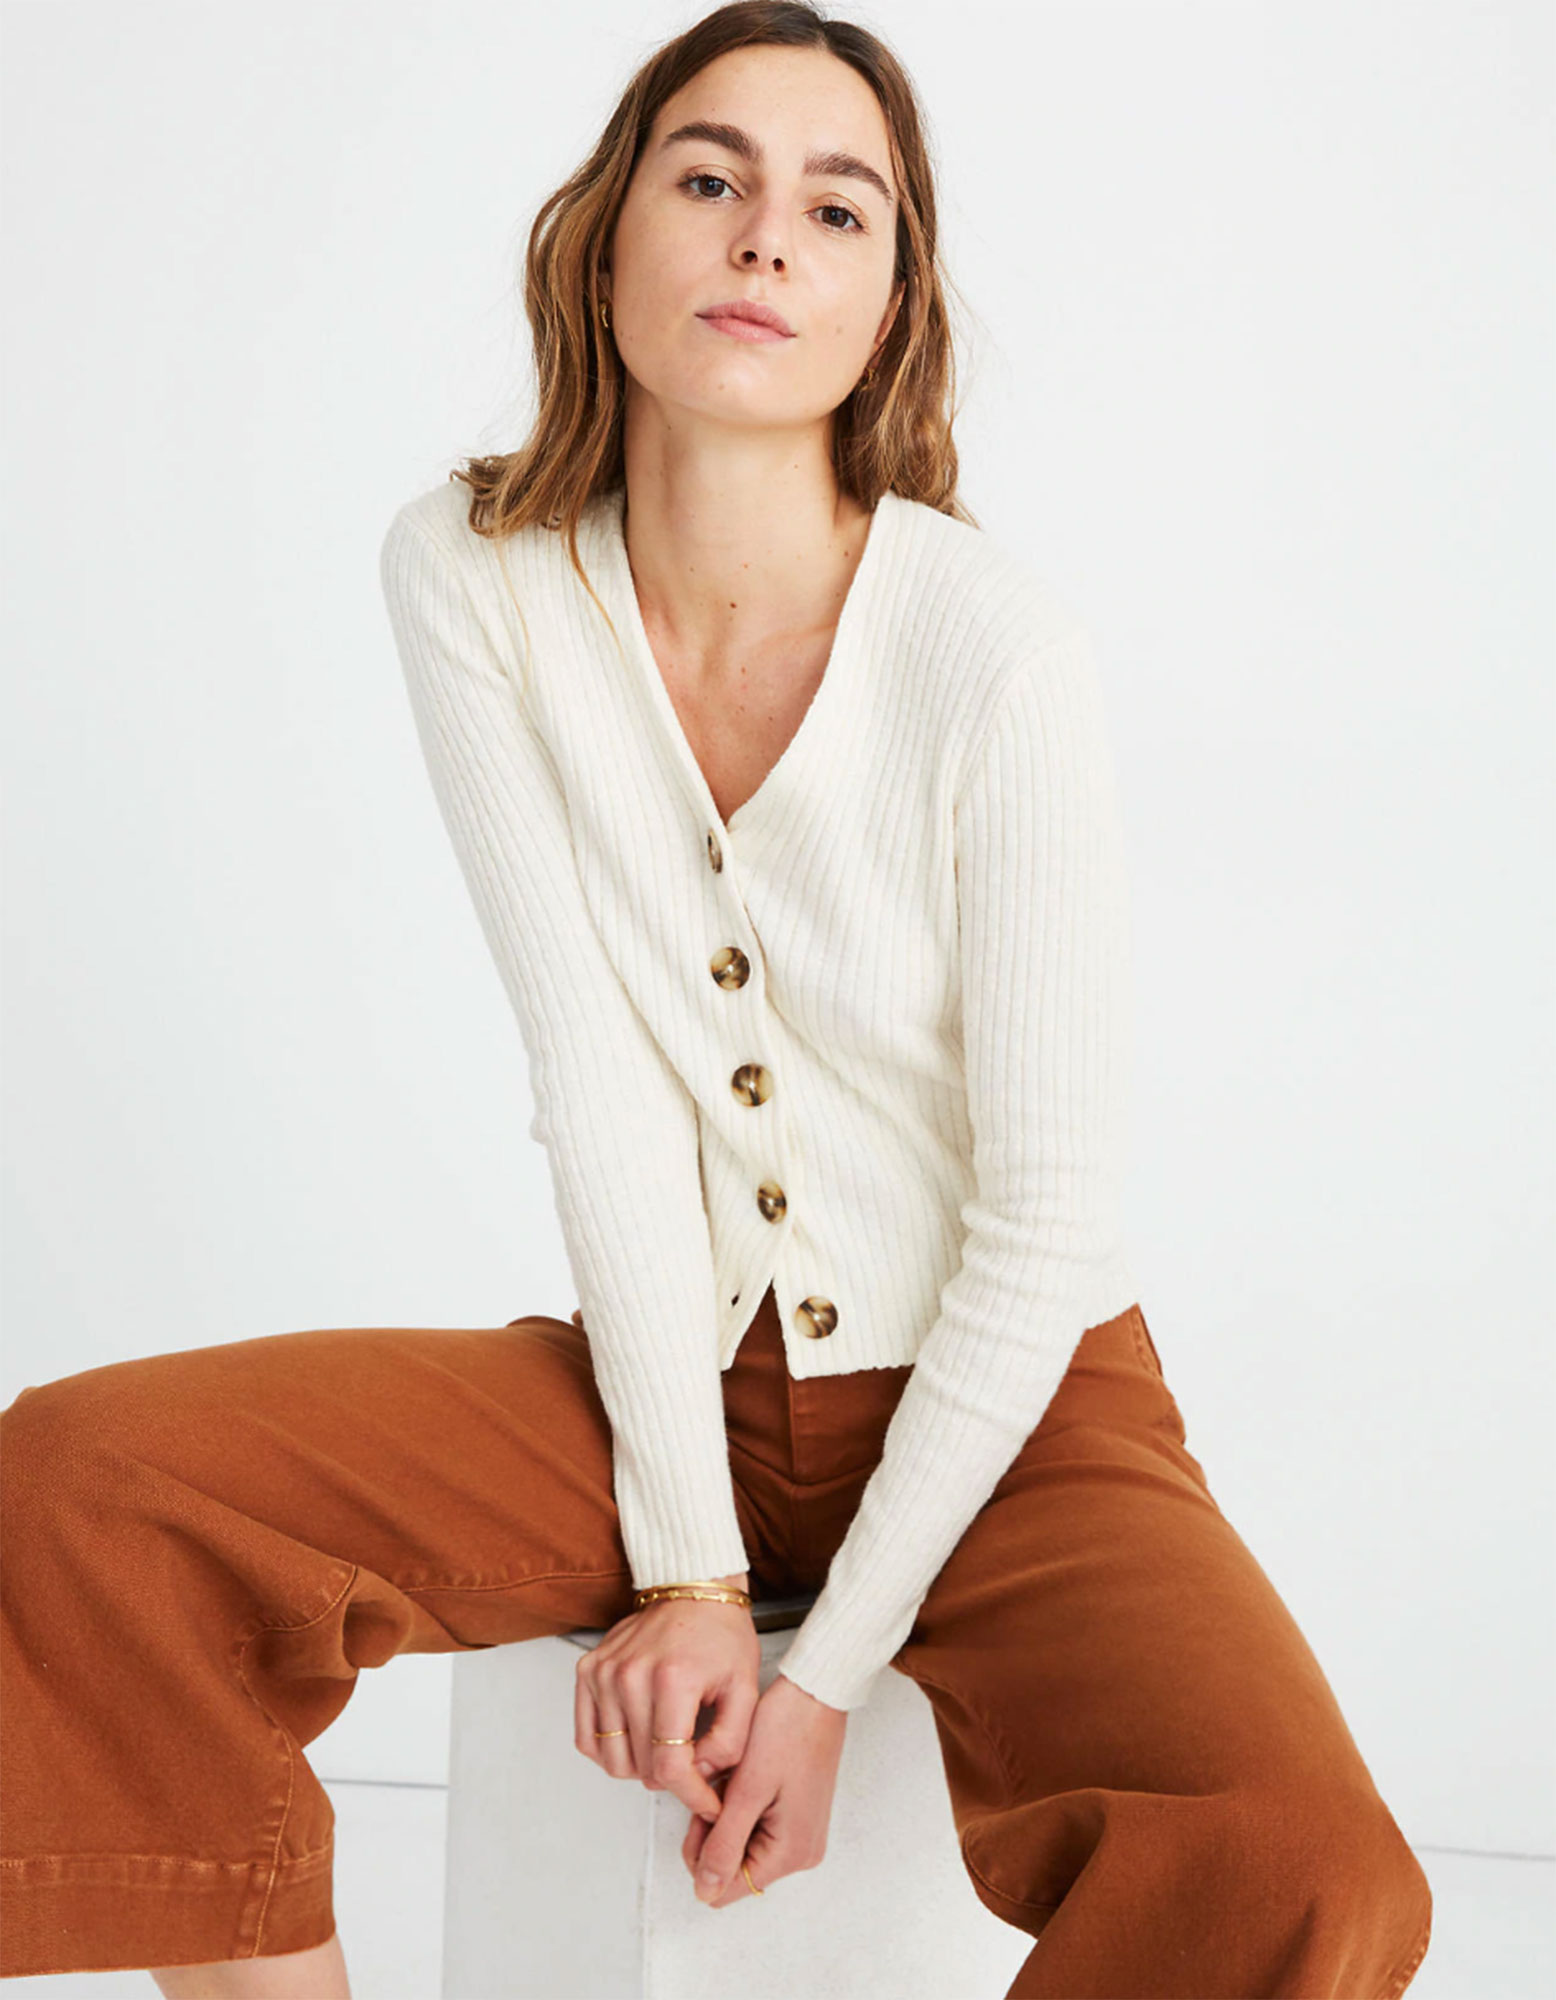 Kendal Jenner Is Bringing Back the Cropped Cardigan ‹ and So Can You - Wear this fitted ribbed top alone or over your favorite '90s-inspired slip dress. $69.50, madewell.com